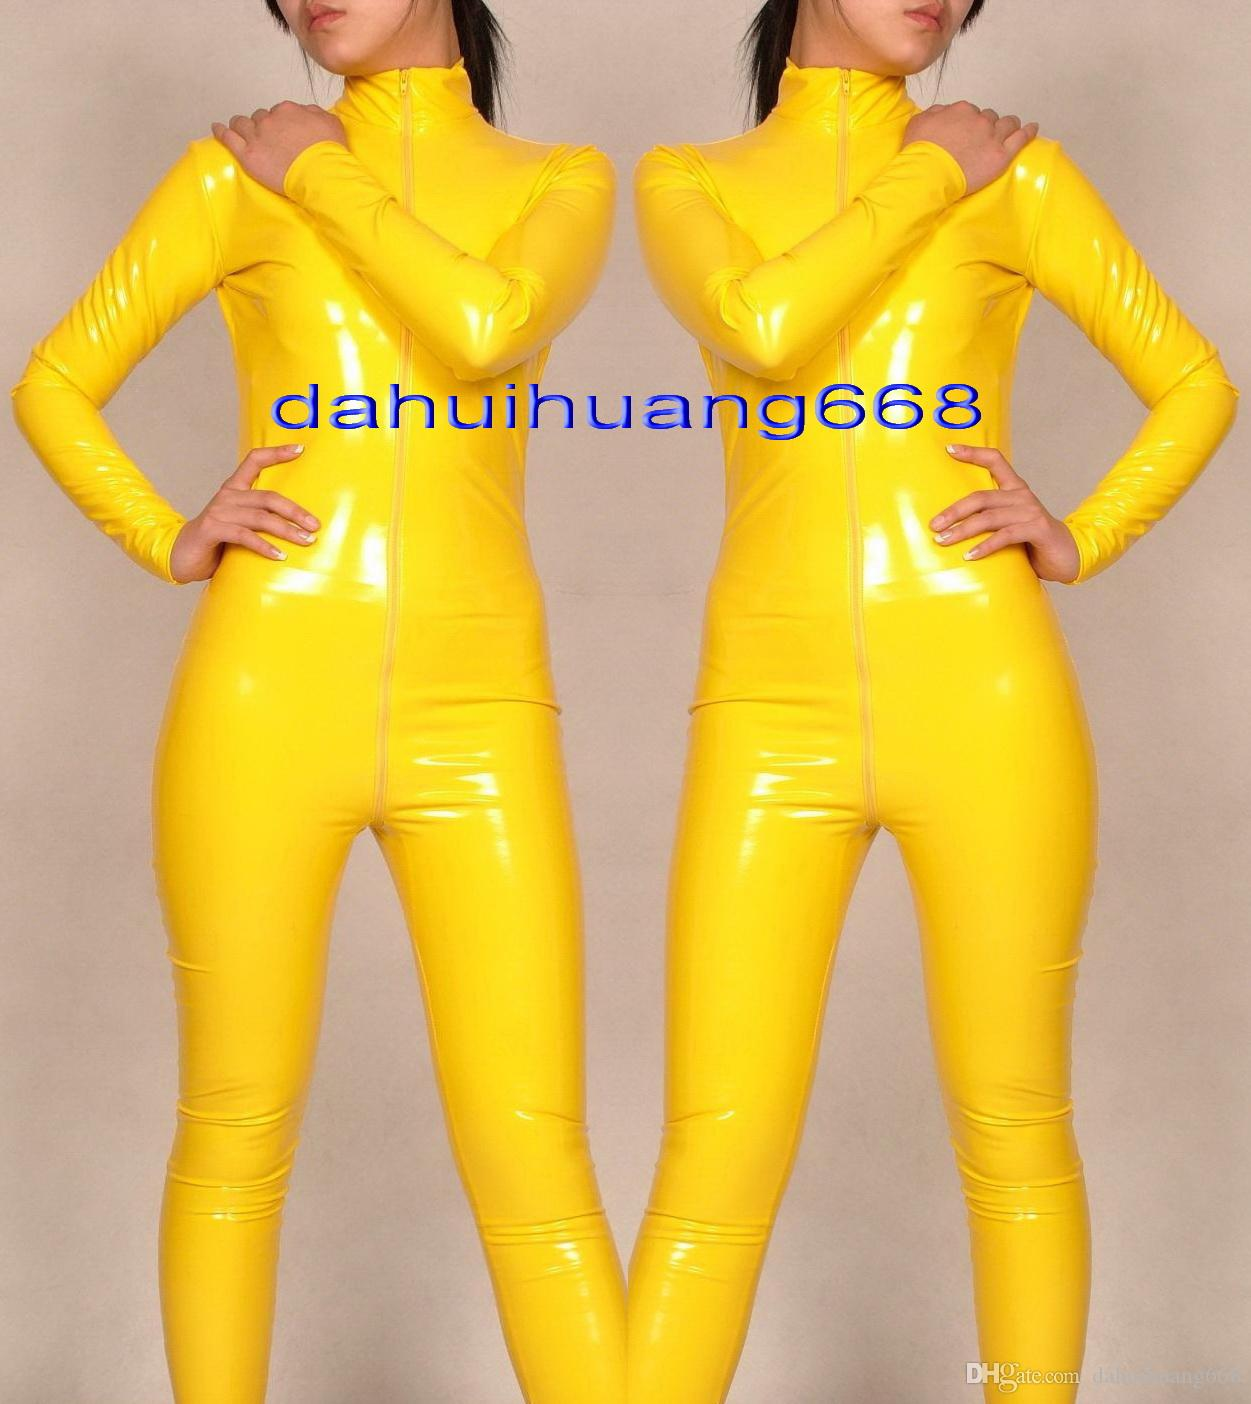 Yellow Shiny PVC Suit Catsuit Costumes Unisex Shiny Yellow PVC Body Suit Unisex Sexy PVC Bodysuit leotard Costumes With Long Zipper DH178